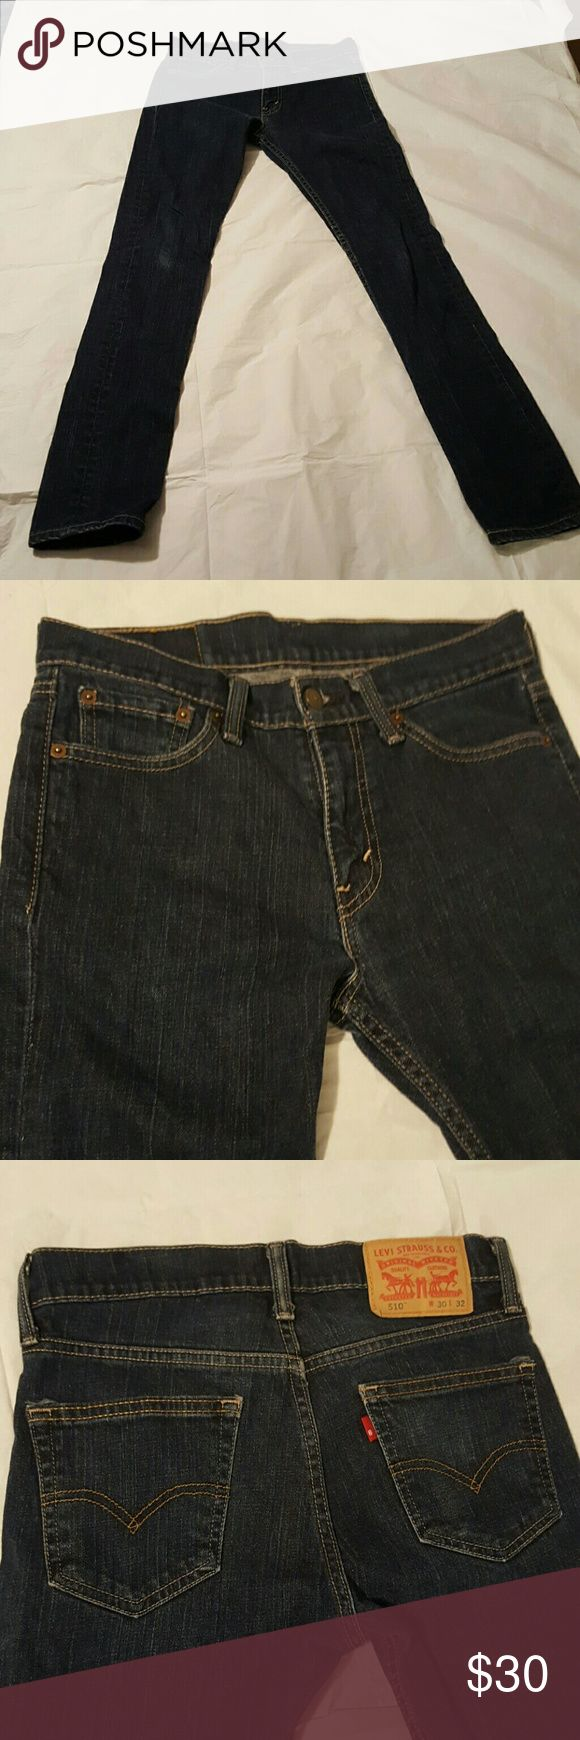 Awesome Mens Levis 510 Denim  W 30 L32 Hi I am selling these awesome Mens Levi 510 dark denim jeans. They are size W 30 L 32.They are in great condition. I also do a 15% discount on 2 item bundles. Please let me know if you have any questions. Happy Poshing!😄💗 Levi's Jeans Skinny